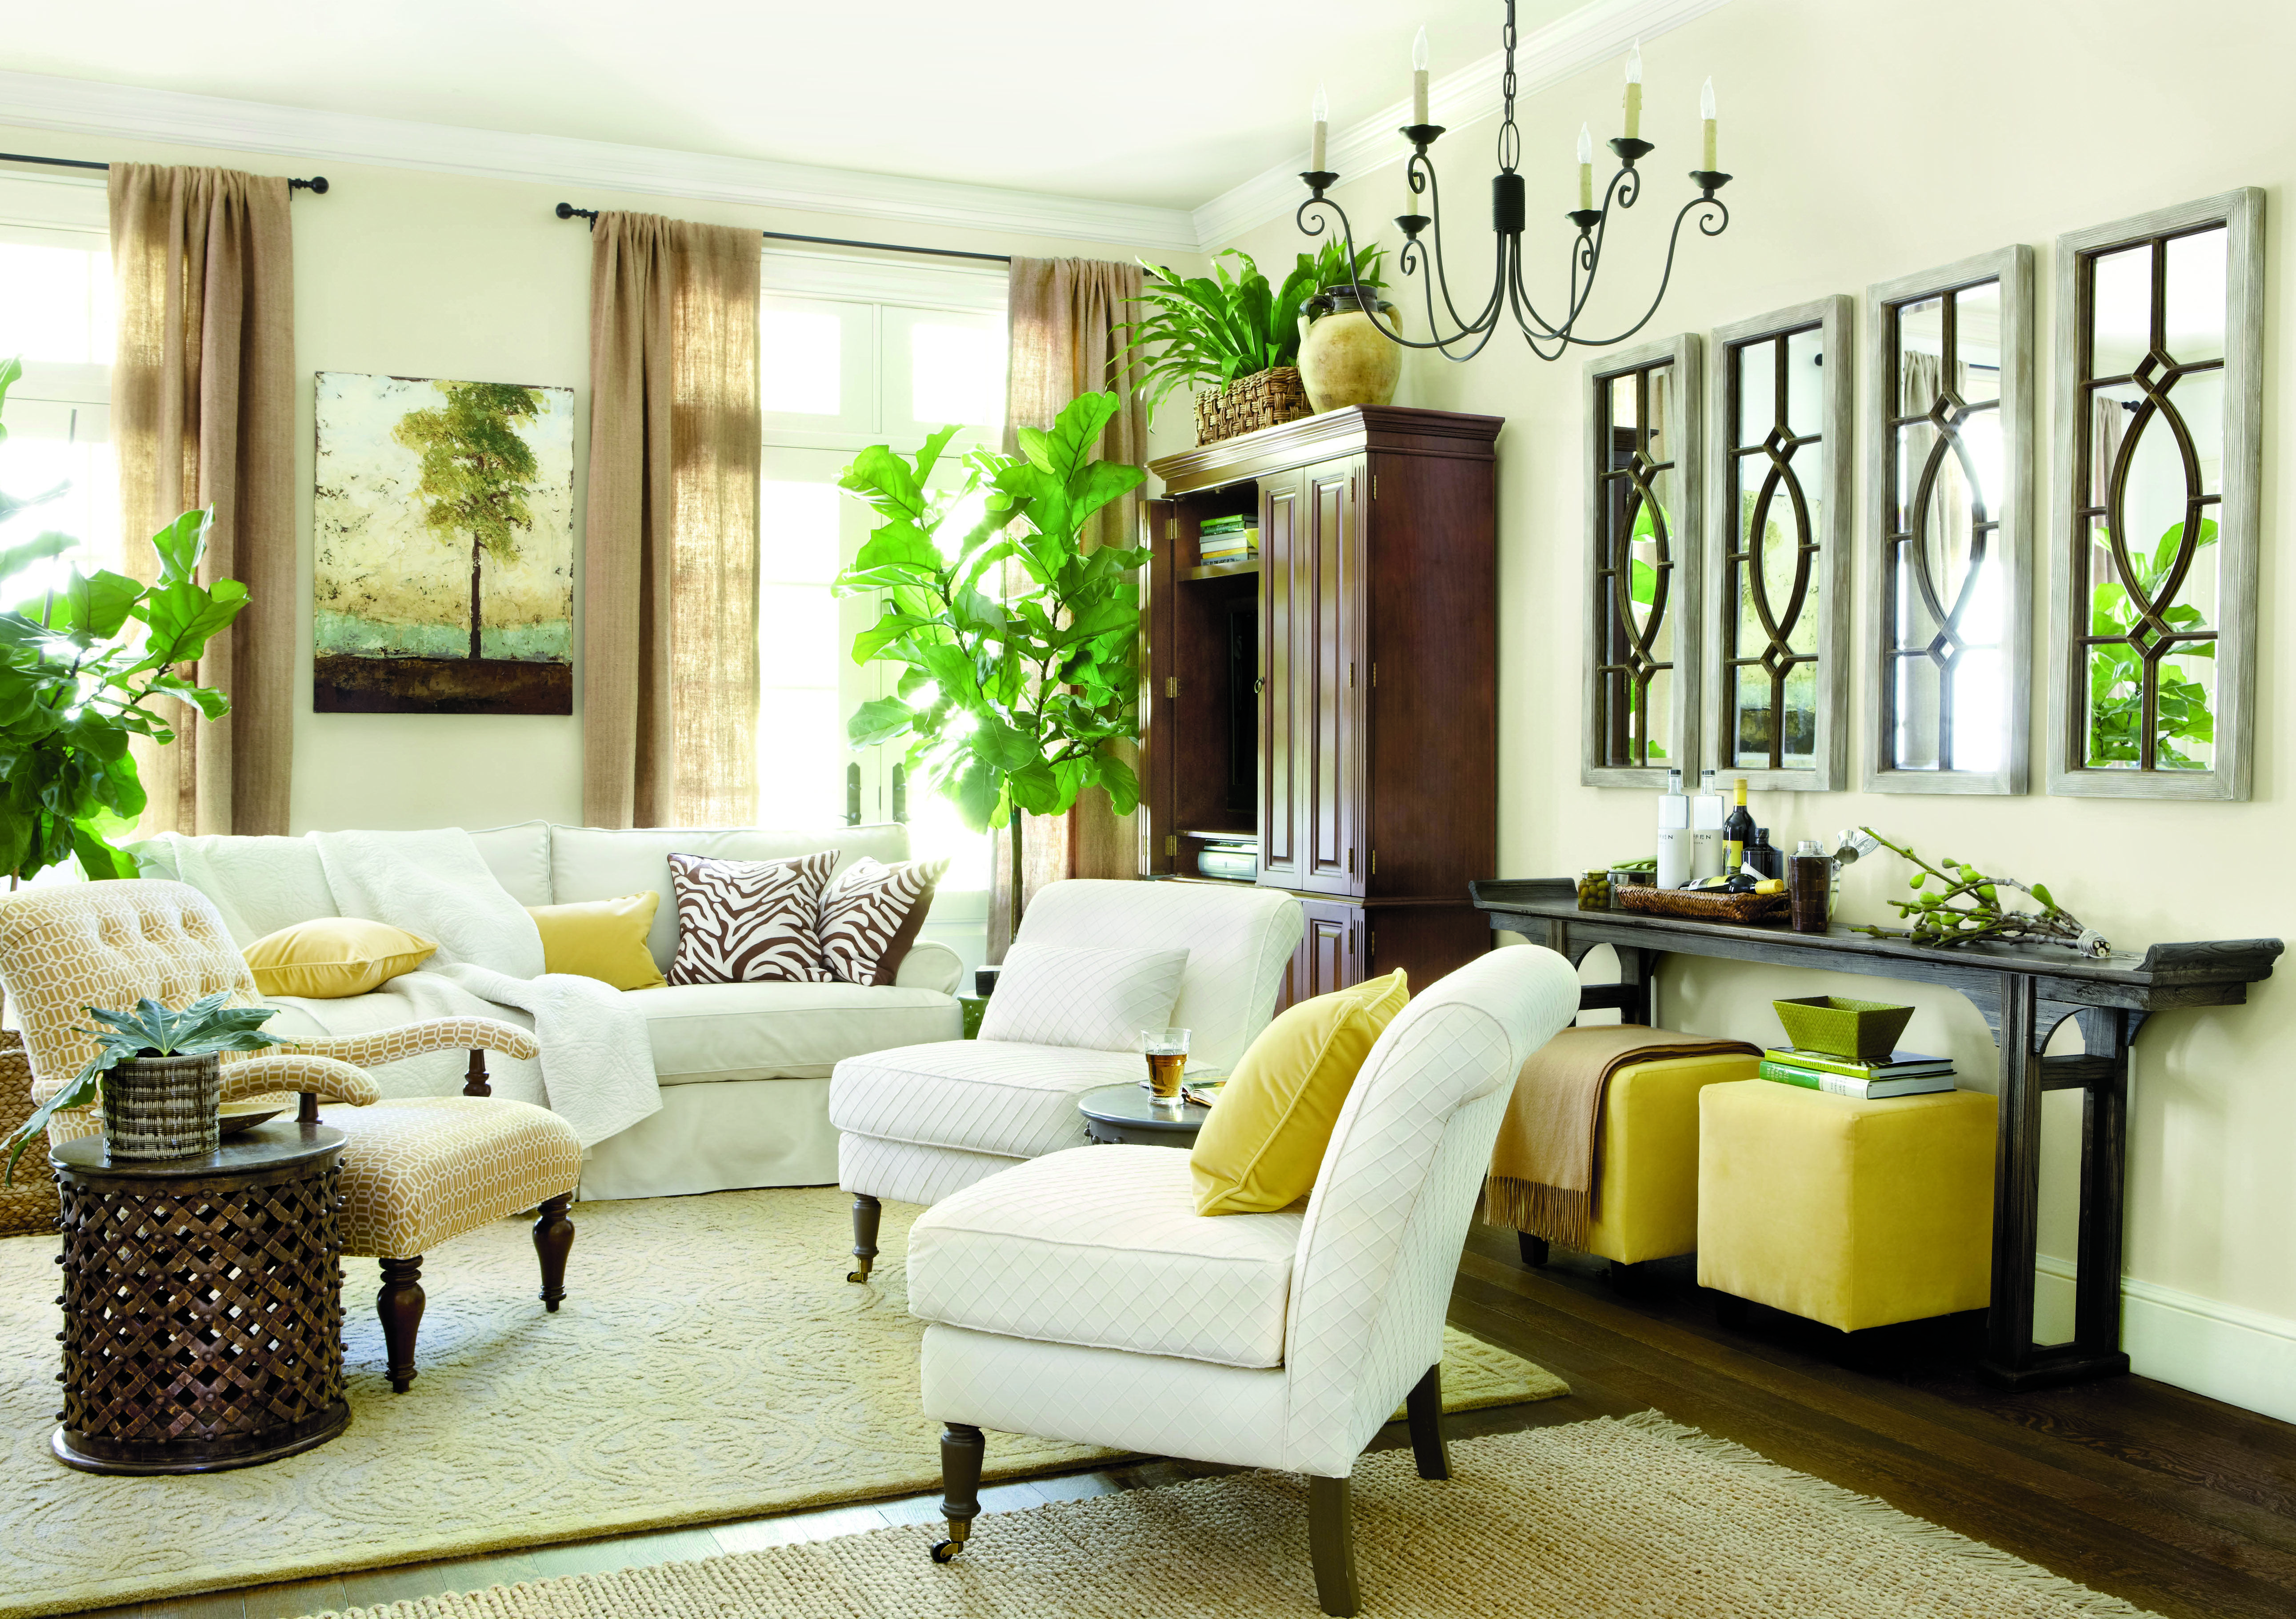 home inspirations window treatments define a room's style